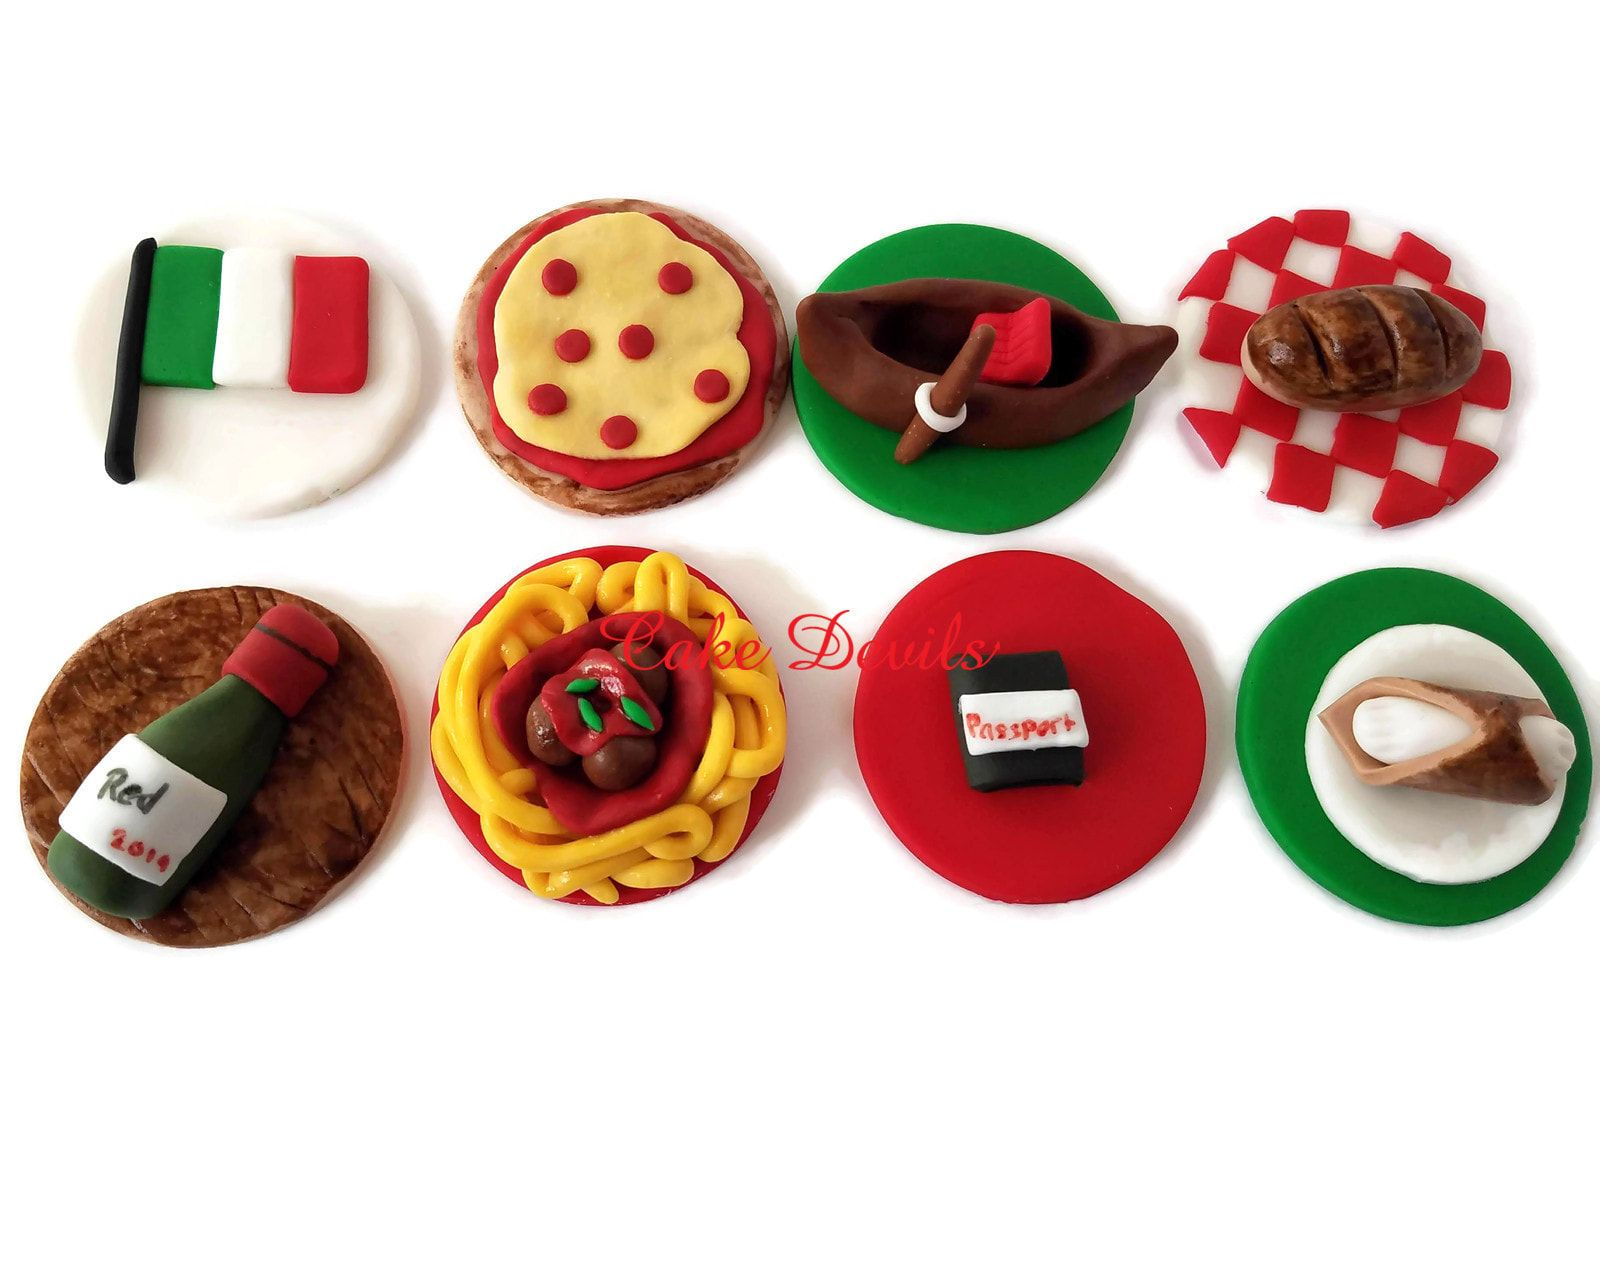 Italian Themed Cupcake Toppers Fondant Cake Decorations Italy Party Bottle Of Wine Cake Decorating With Fondant Fondant Cake Toppers Fondant Cupcake Toppers